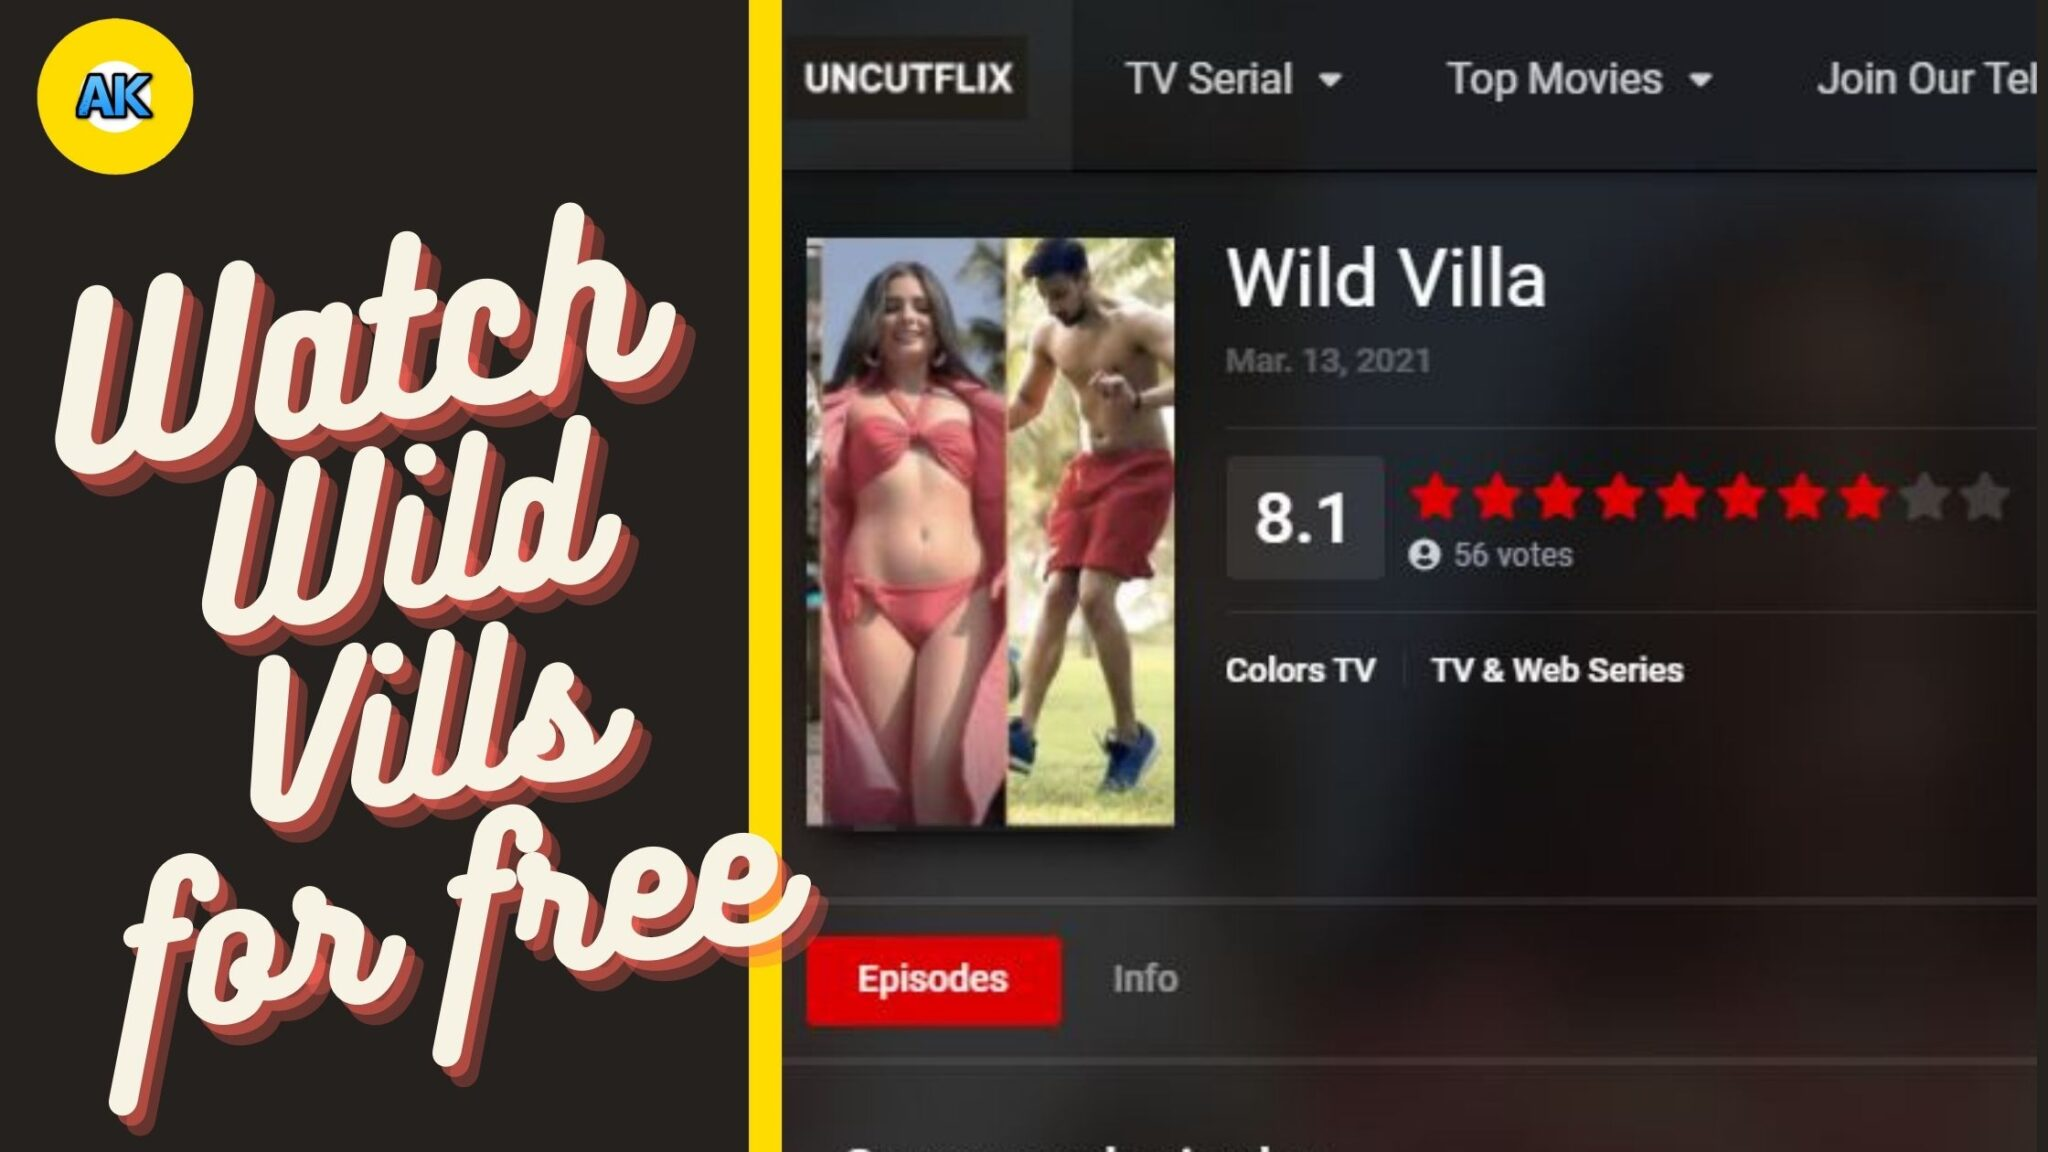 How to watch wild villa for free